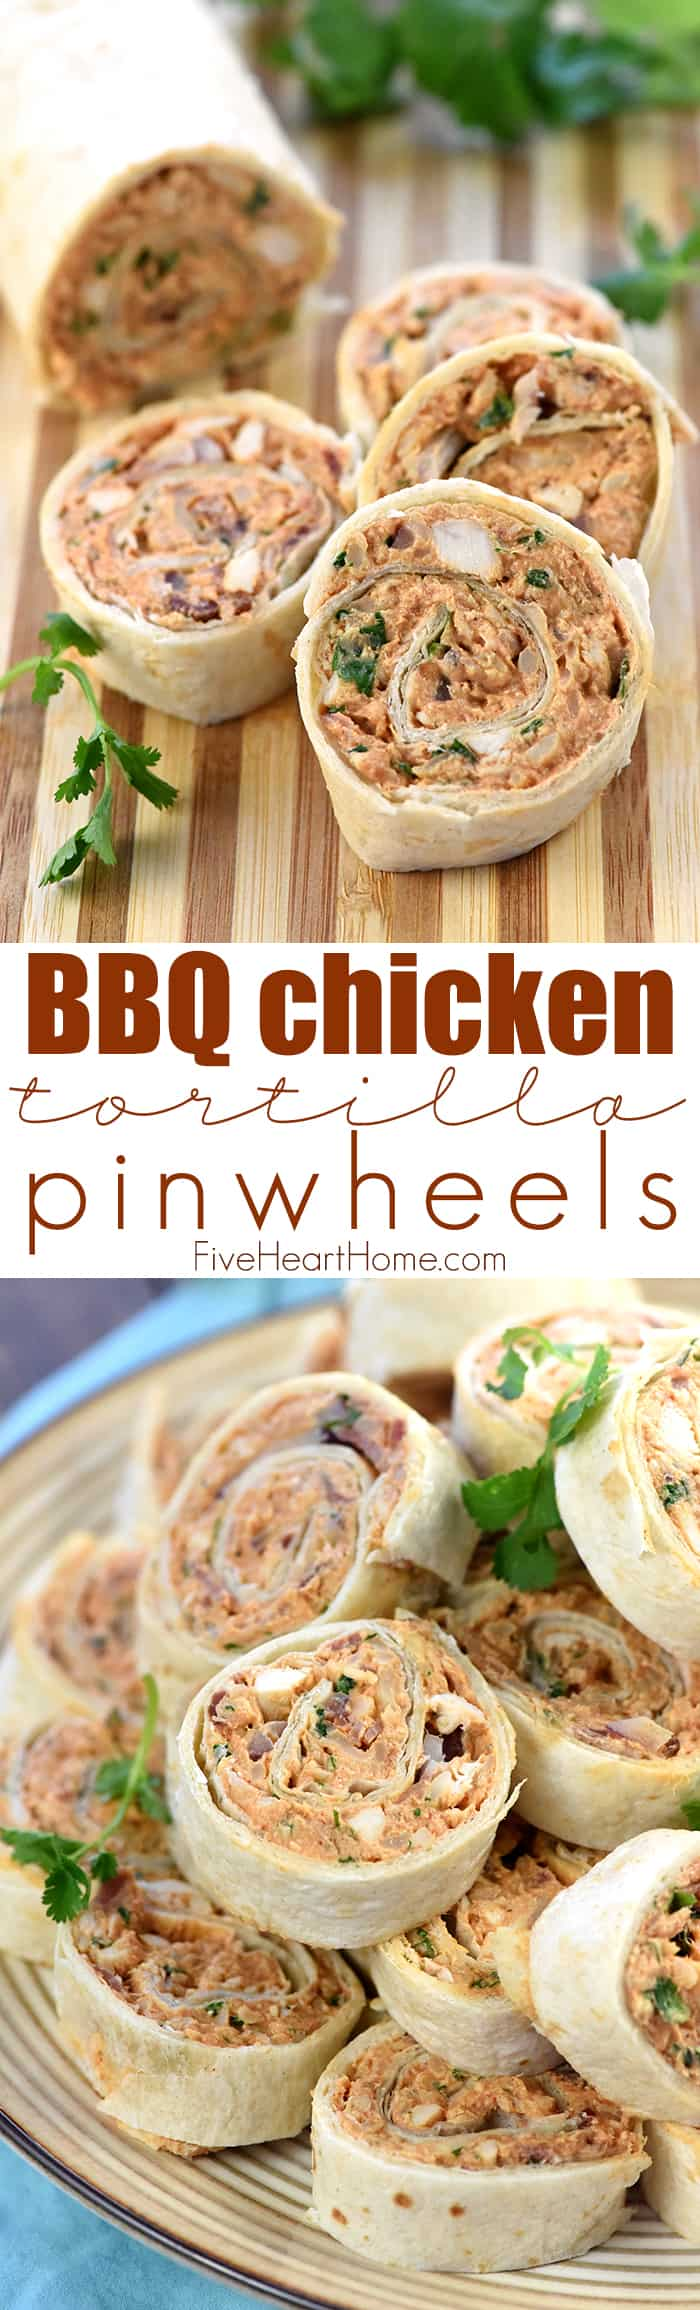 BBQ Chicken Tortilla Pinwheels with Collage and Text Overlay